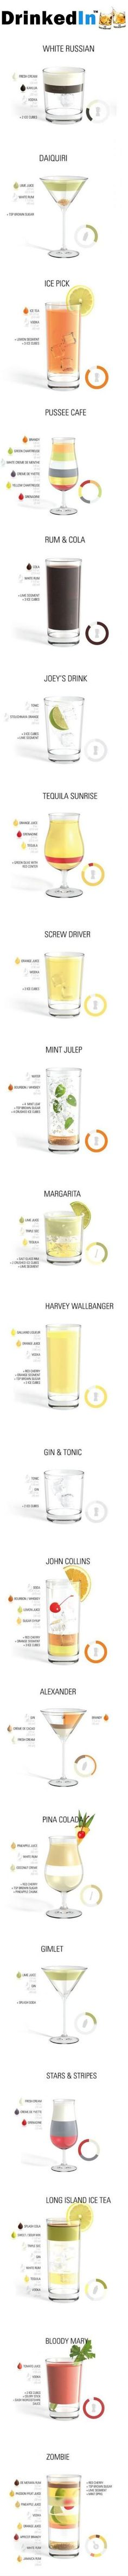 Mixed Drink Recipe Infographic by Maiden11976